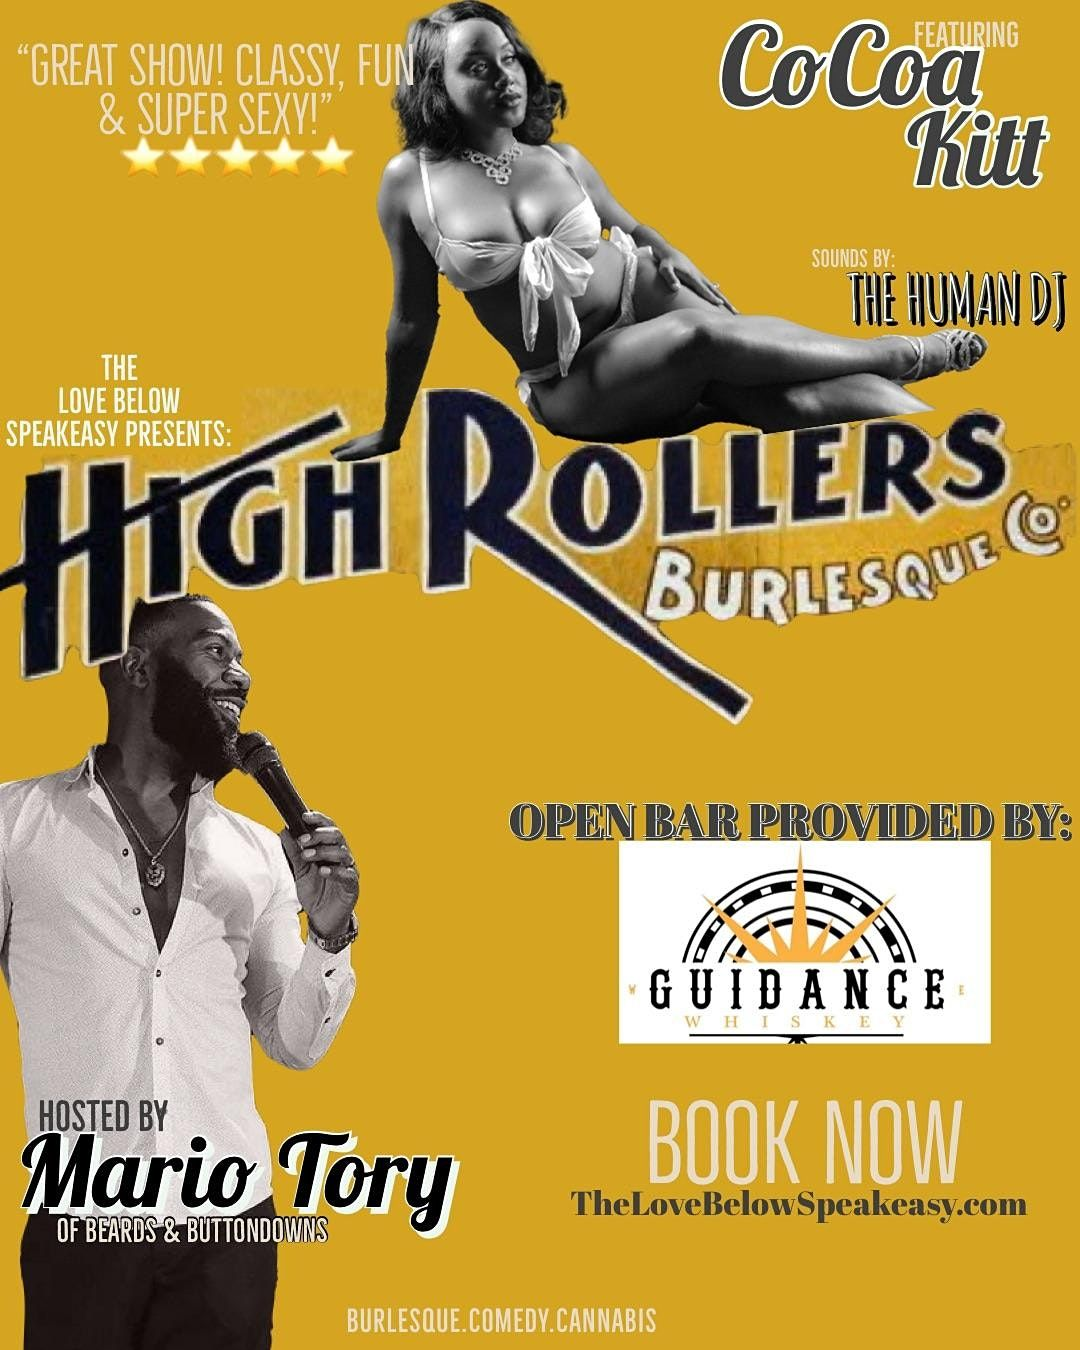 HIGH ROLLERS BURLESQUE CO at THE LOVE BELOW SPEAKEASY